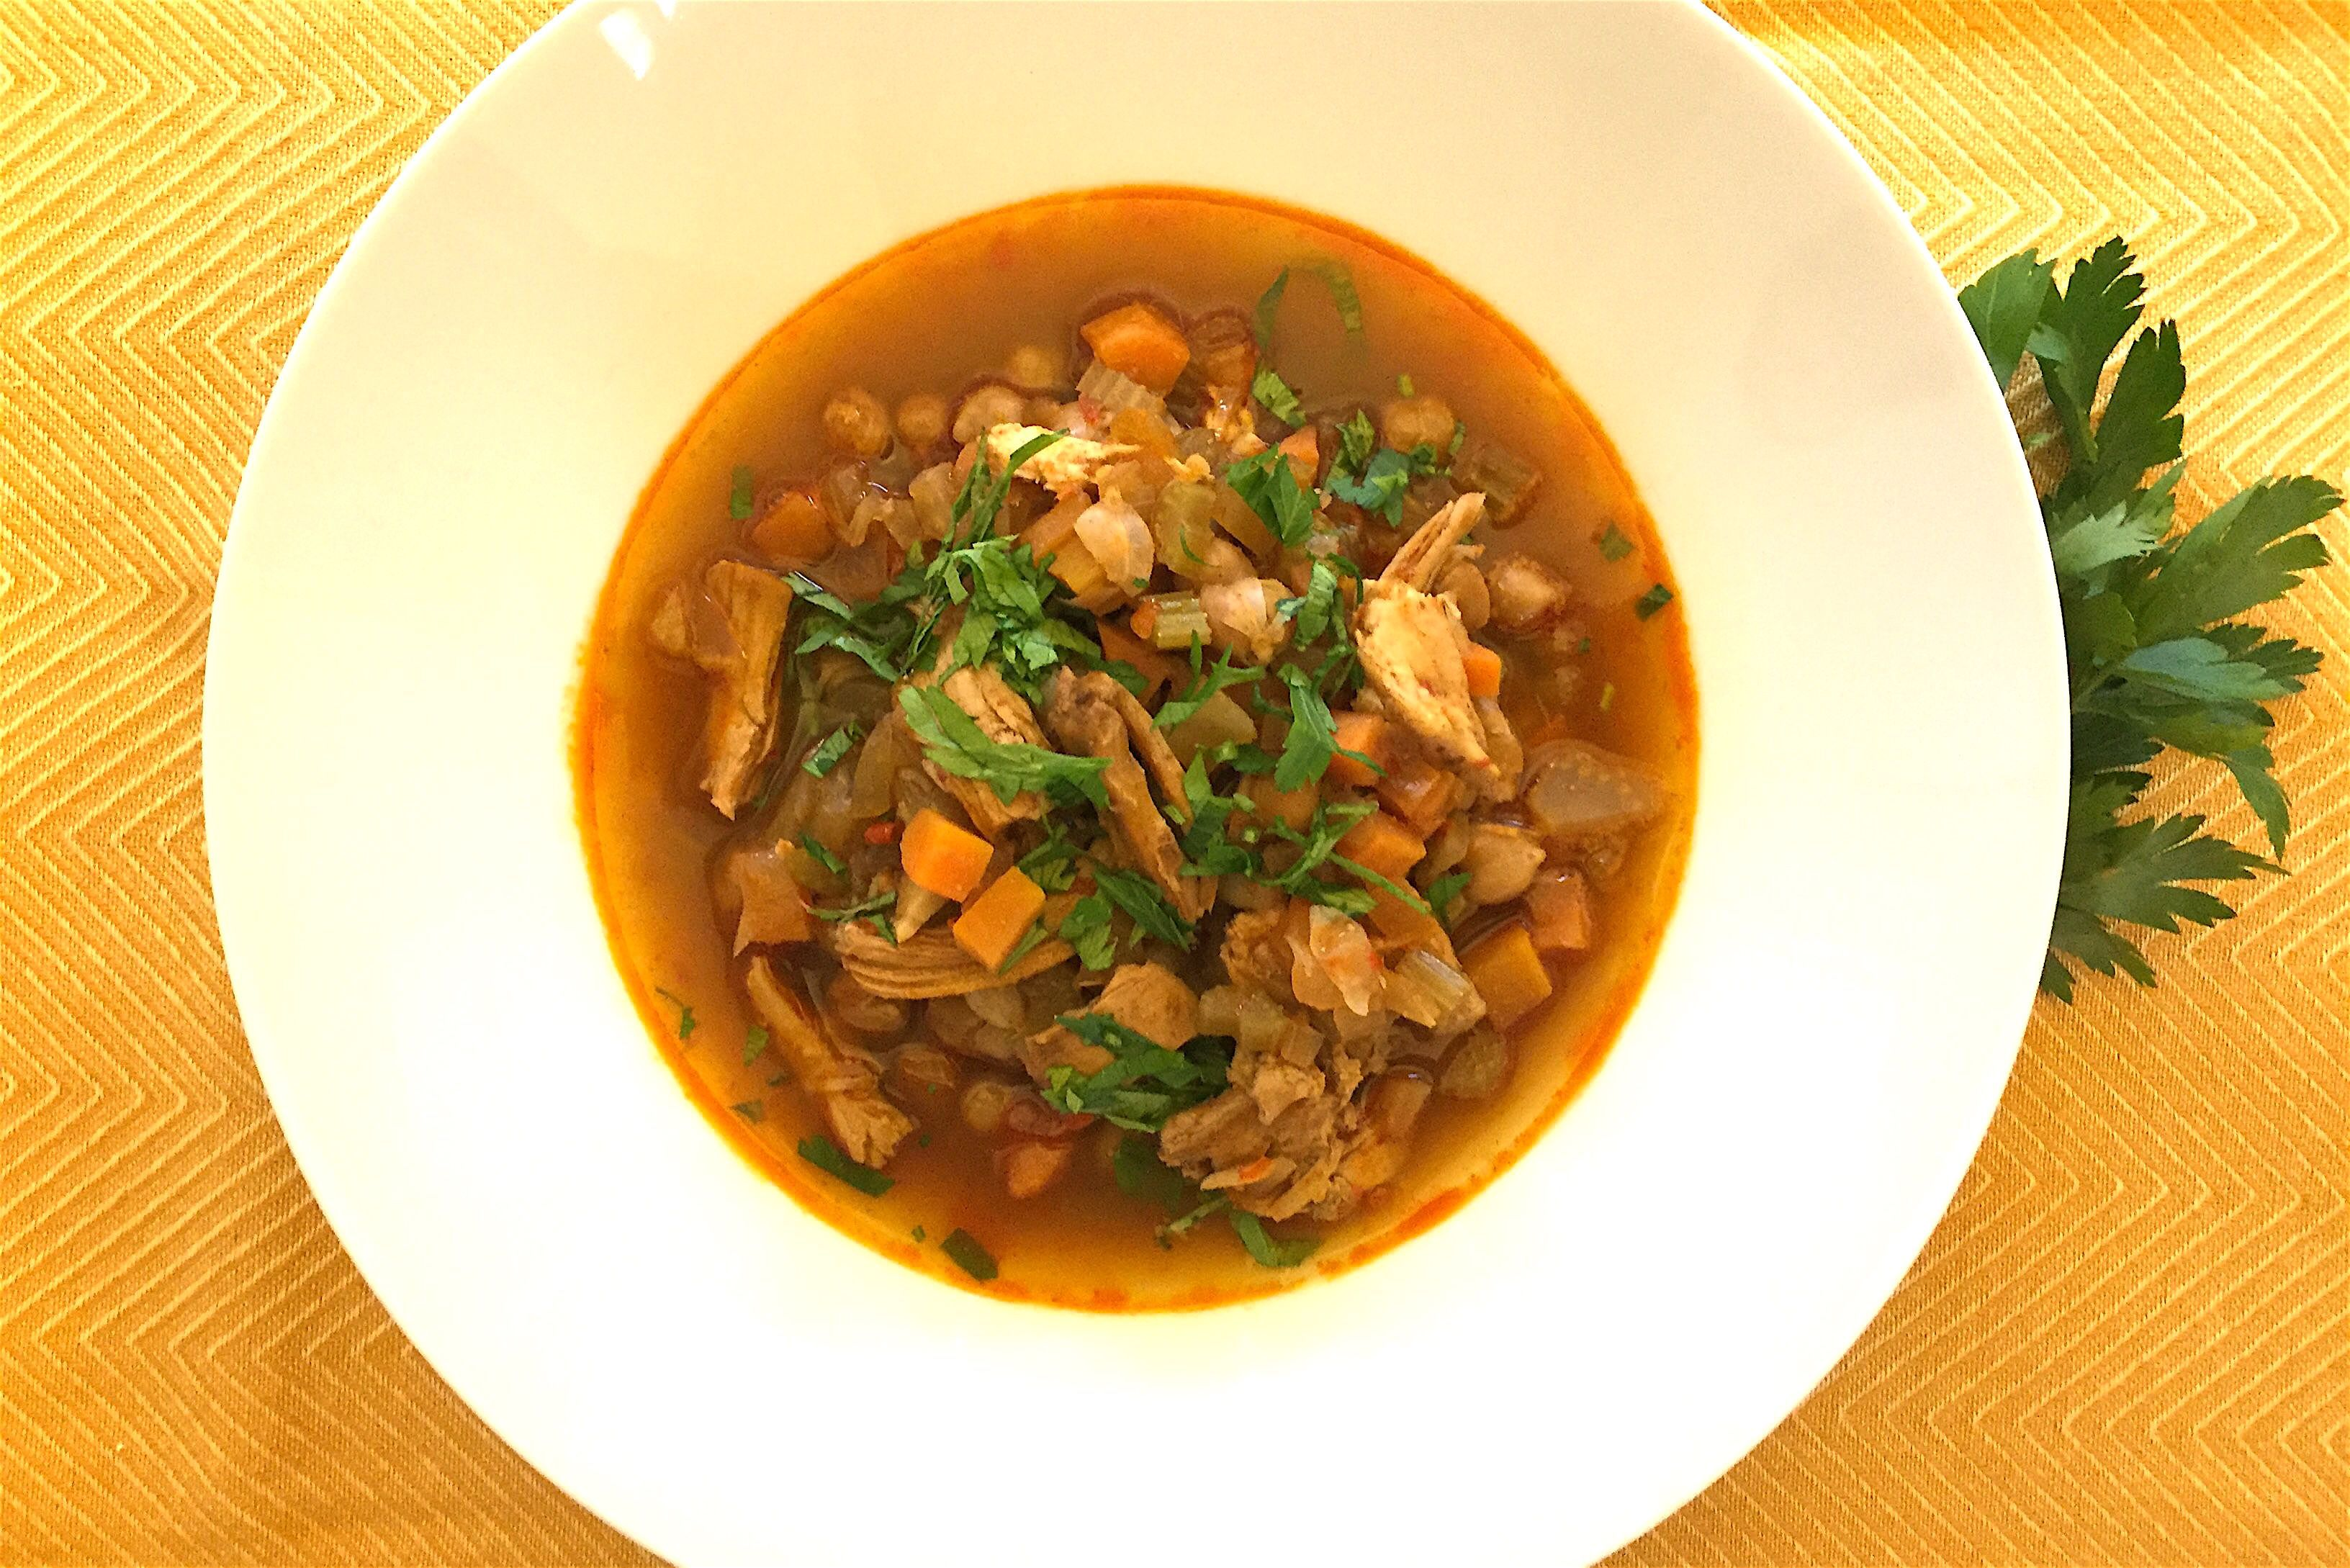 Low-Carb Harissa Spiced Chickpea and Chicken Soup